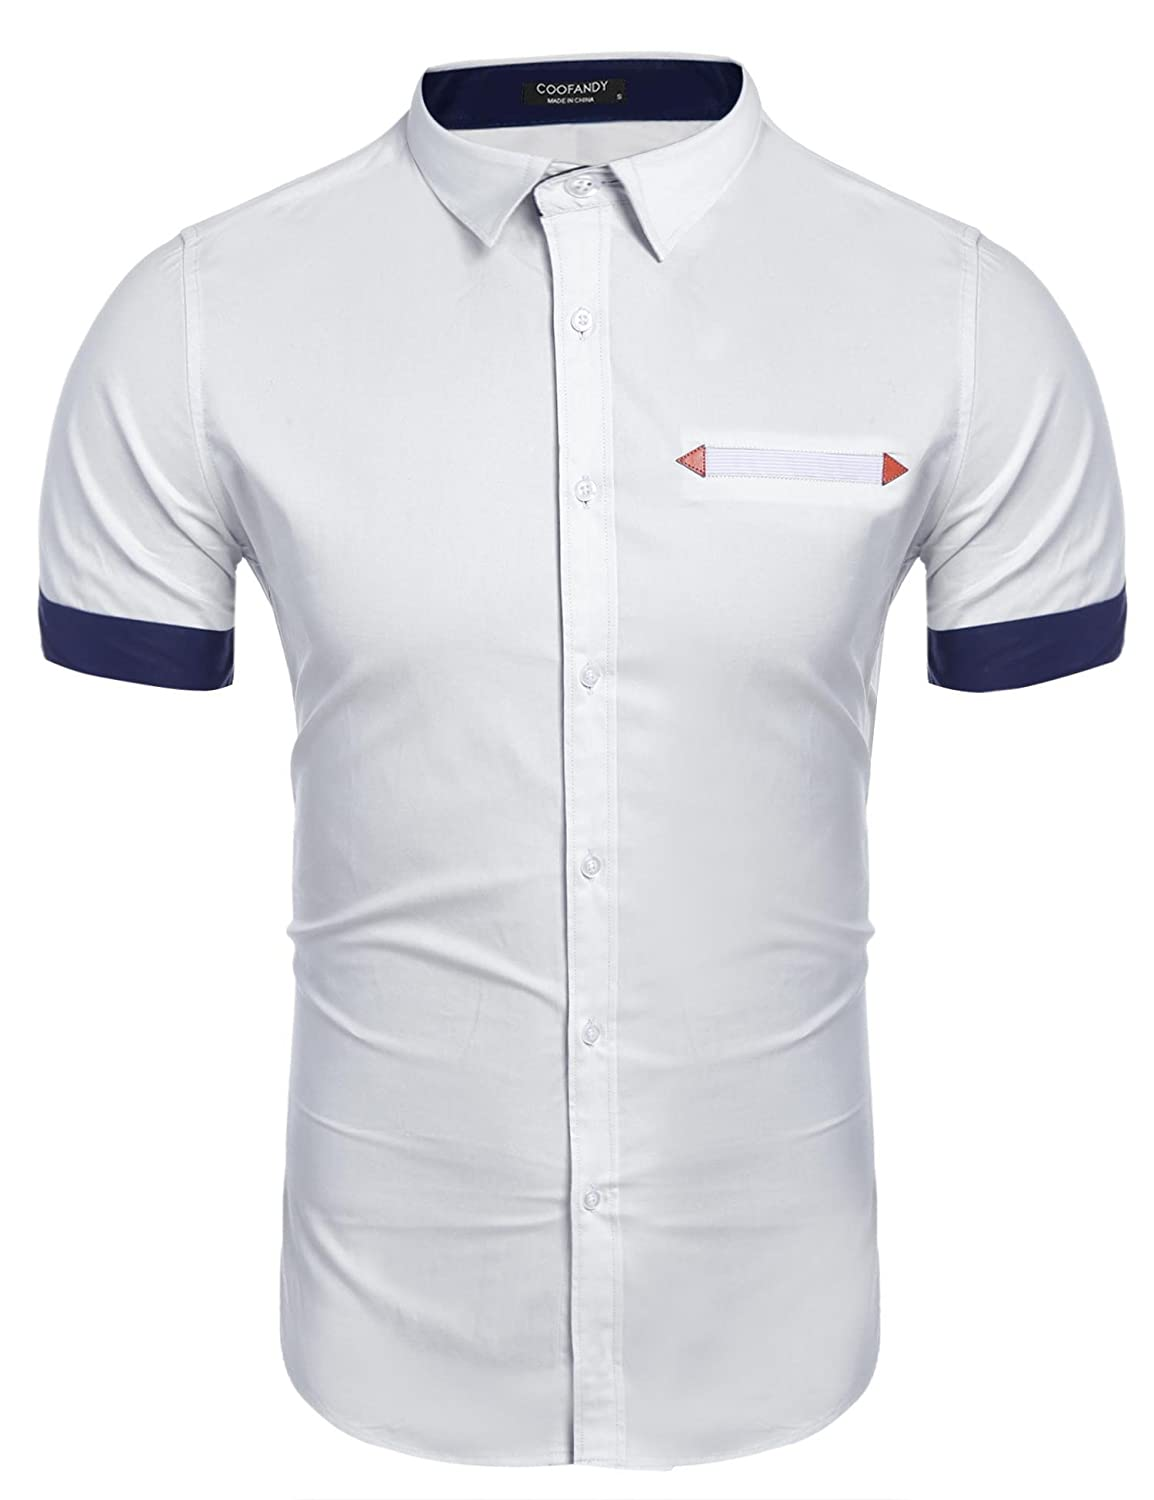 COOFANDY Men's Contrast Color Casual Short Sleeve Slim Fit Button Down Dress Shirt EEE005693